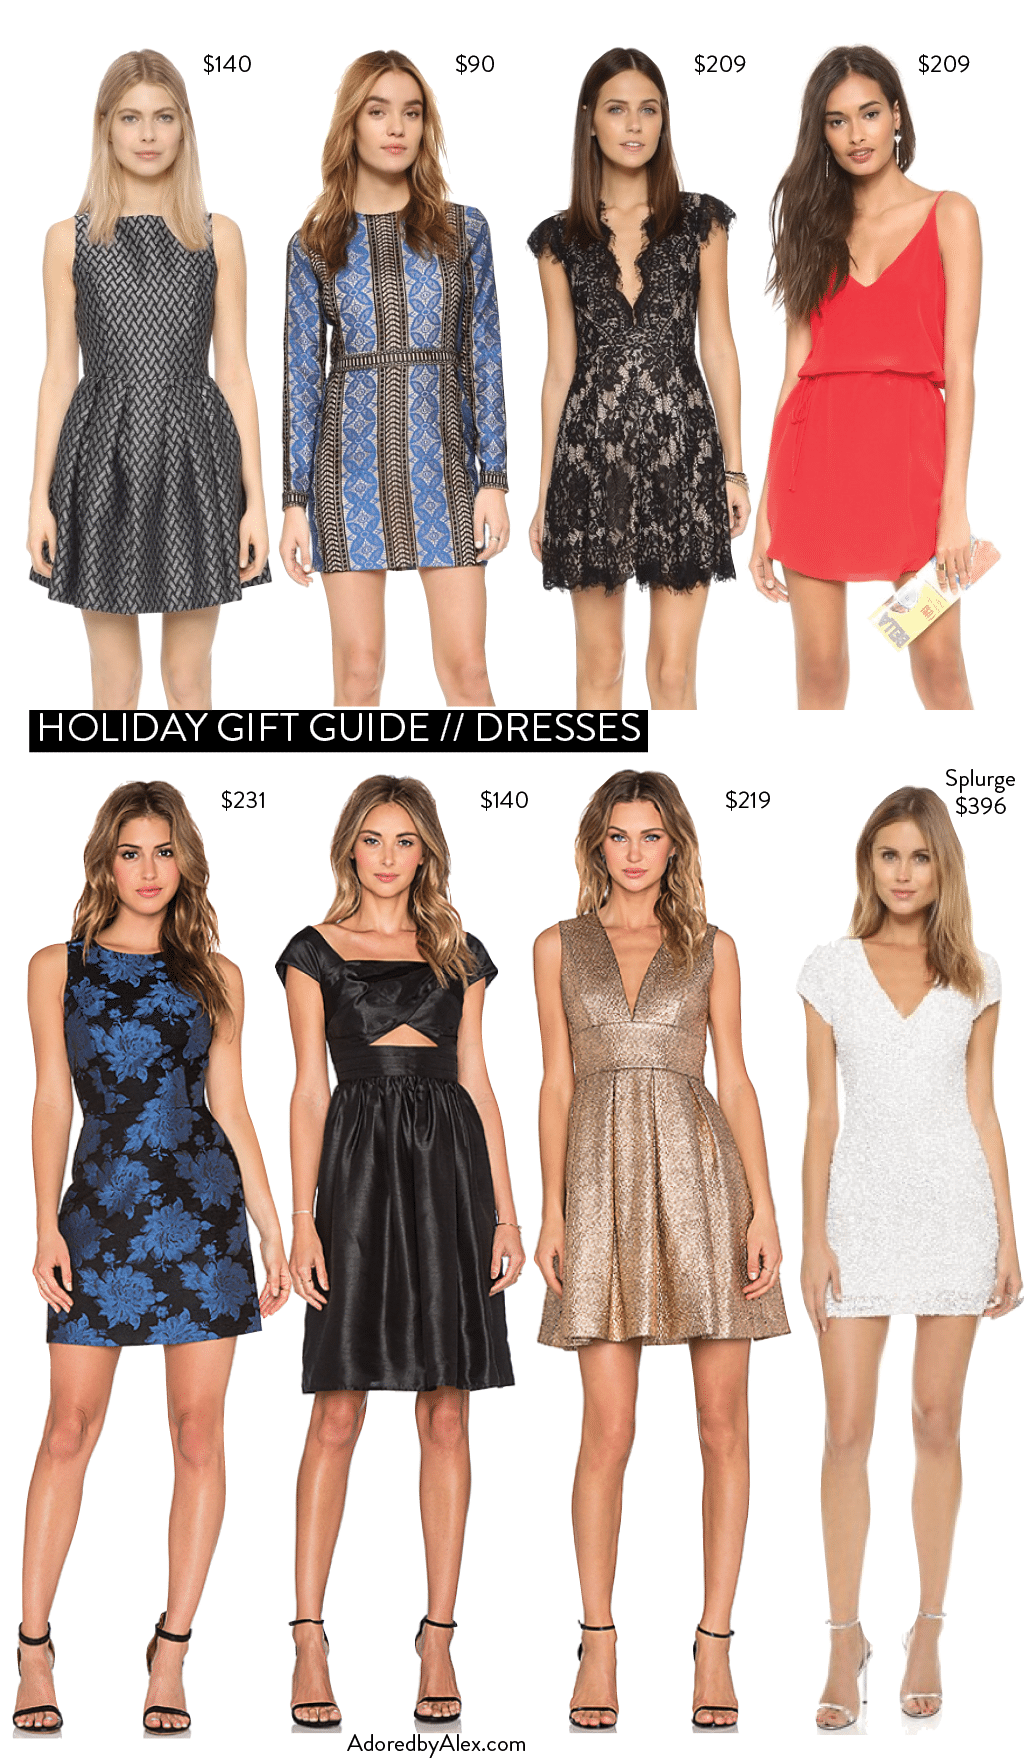 Holiday Party Dresses - Adored by Alex